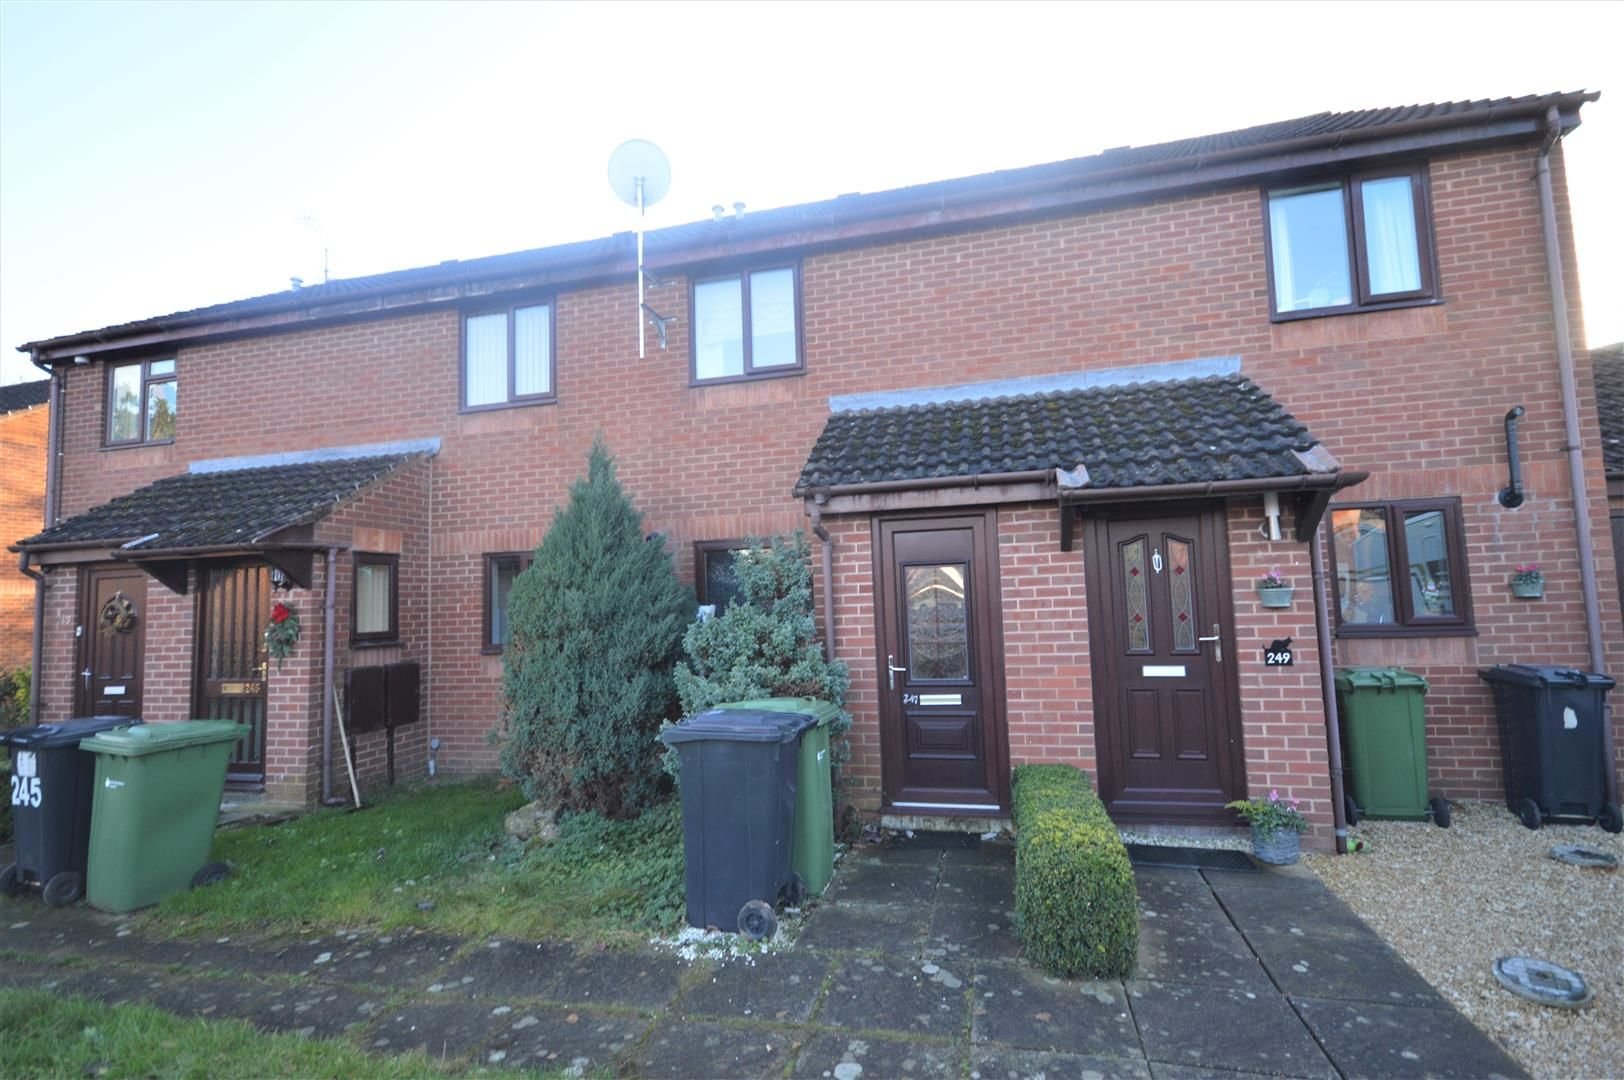 2 bed terraced for sale in Leominster, HR6